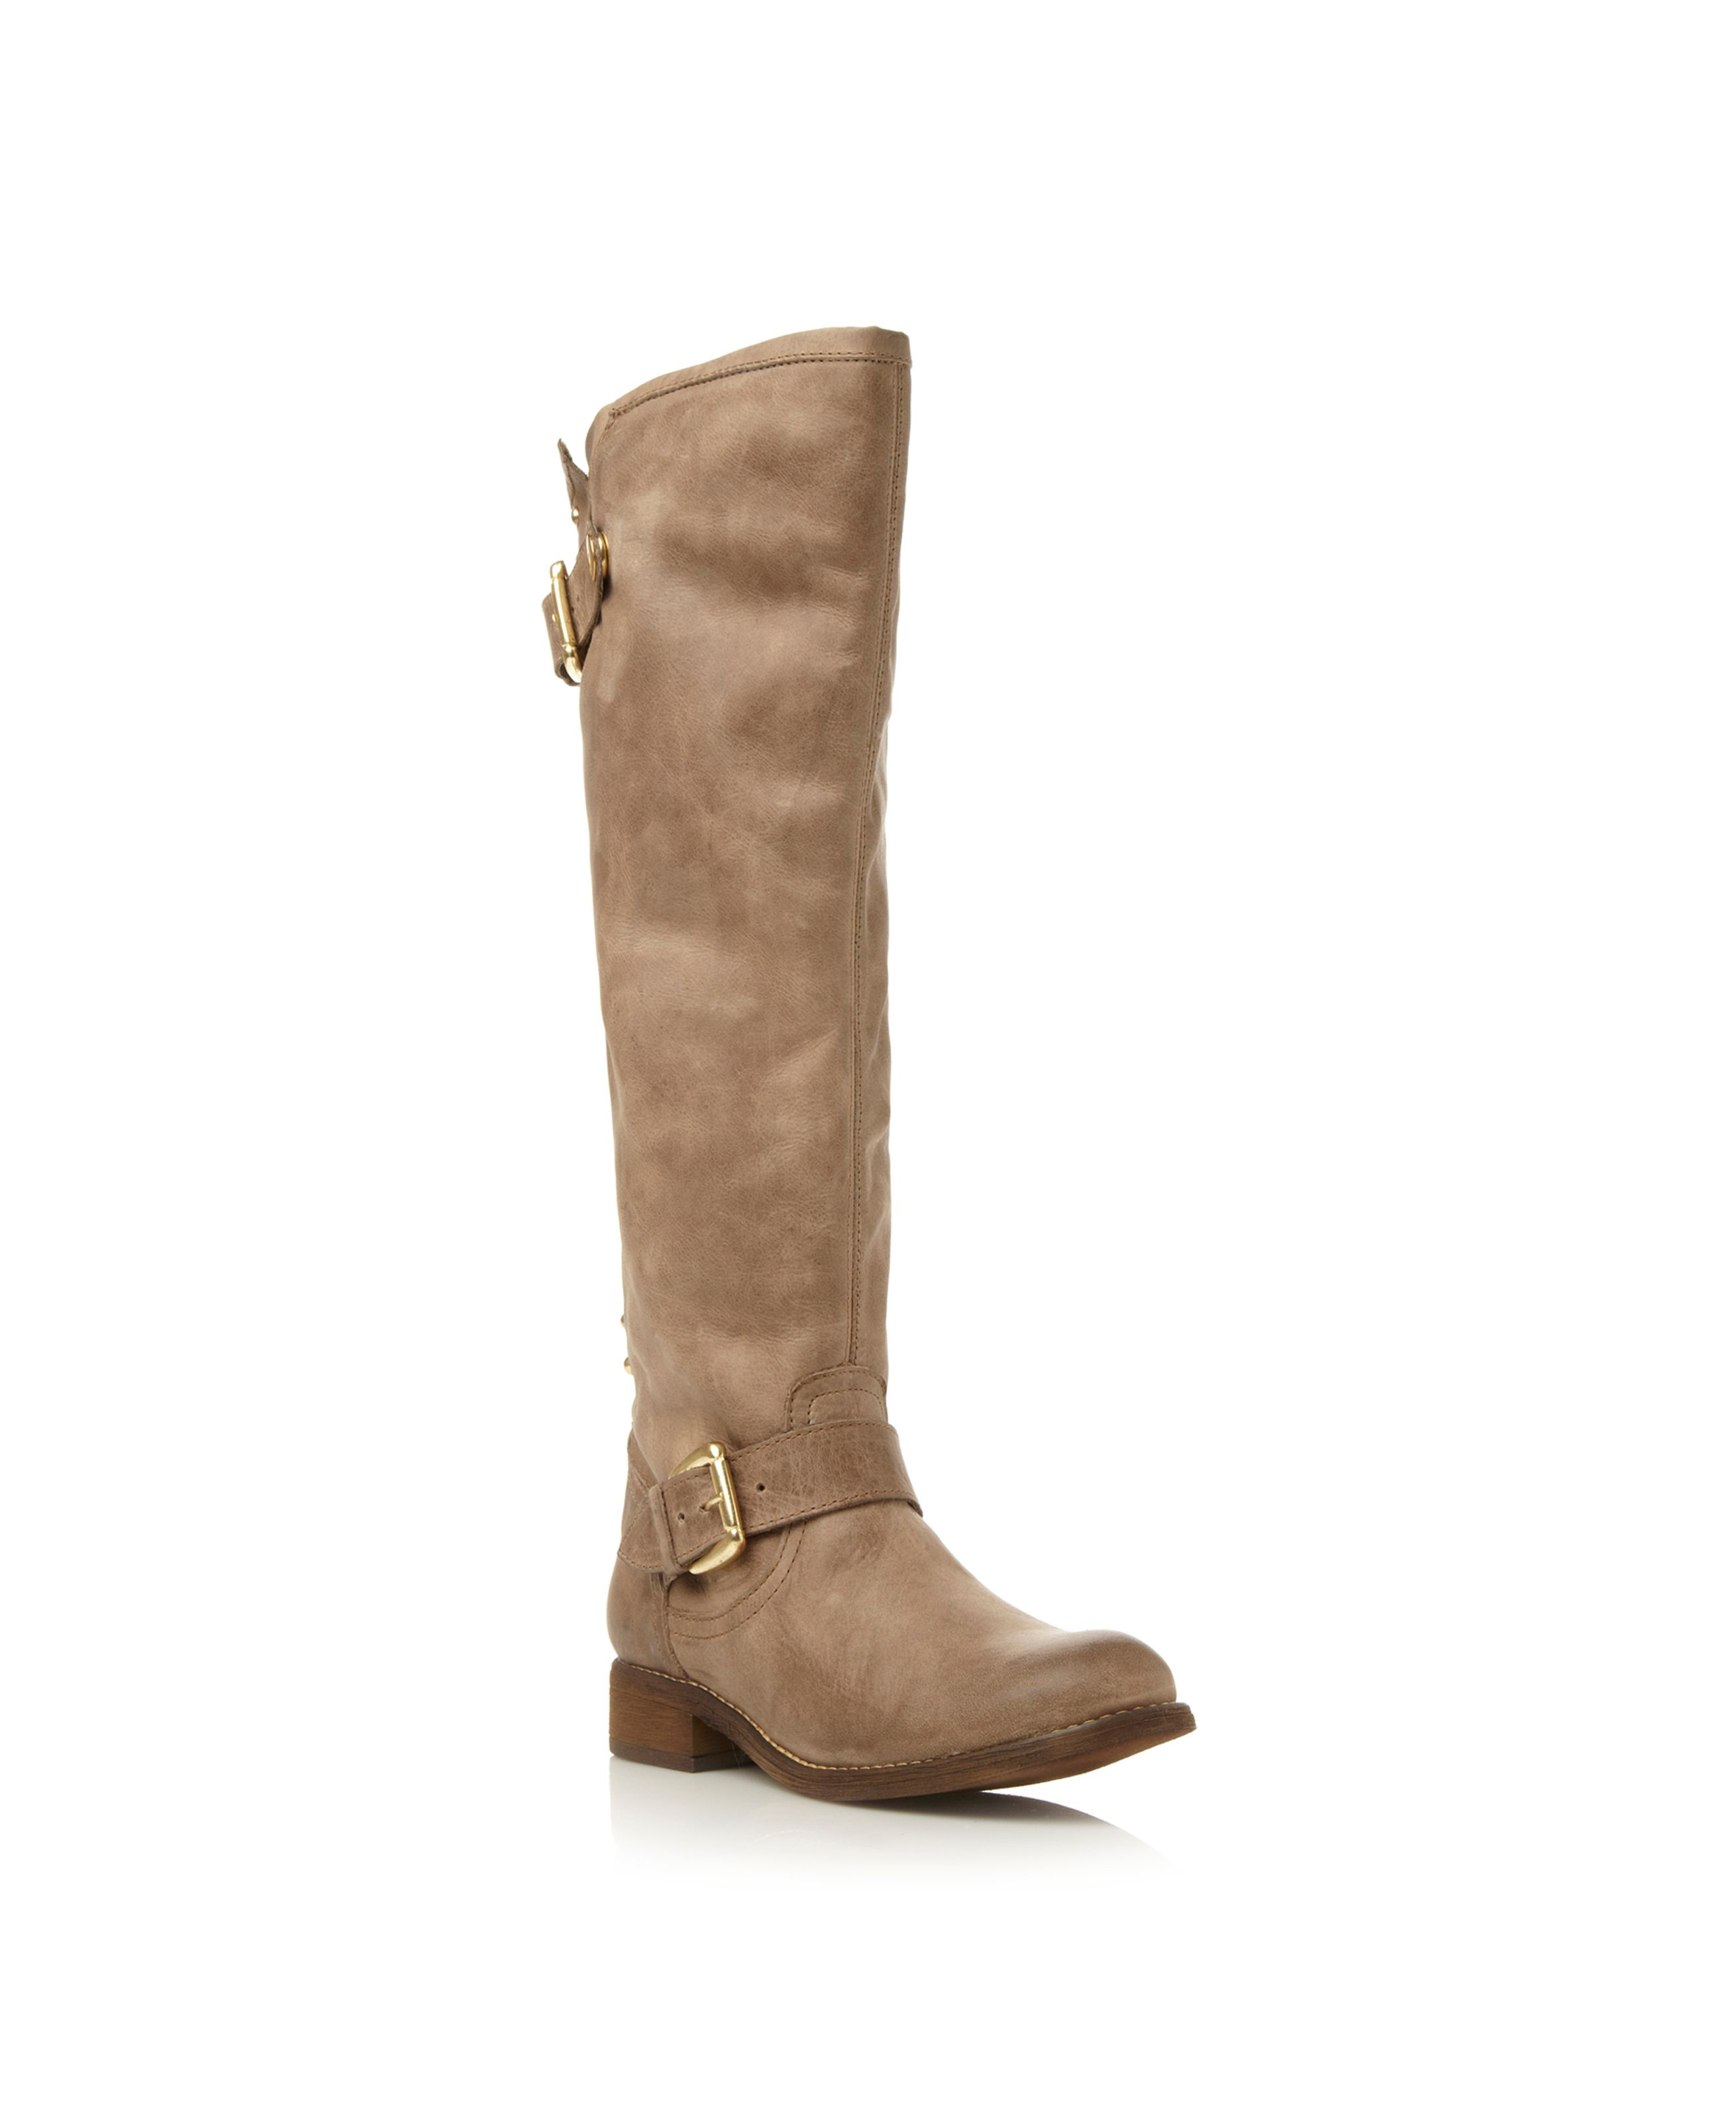 Lynet stud back zip high leg boots